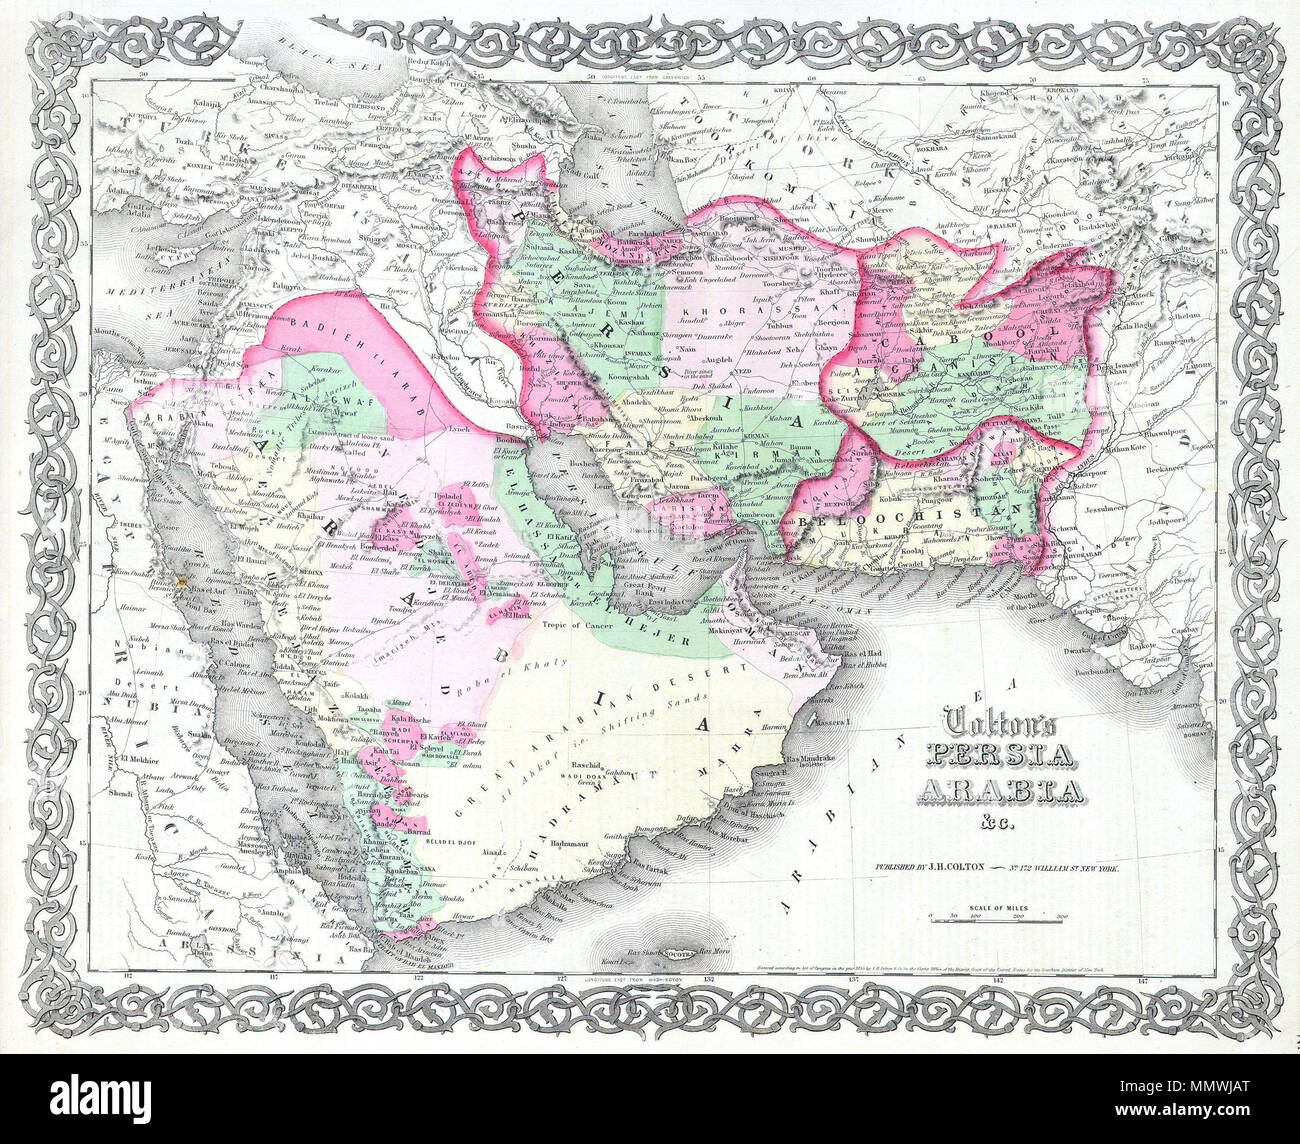 Desert kuwait and iraq iraq afghanistan stock photos desert kuwait english map of persia and arabia from j h coltons 1855 atlas of the world gumiabroncs Gallery